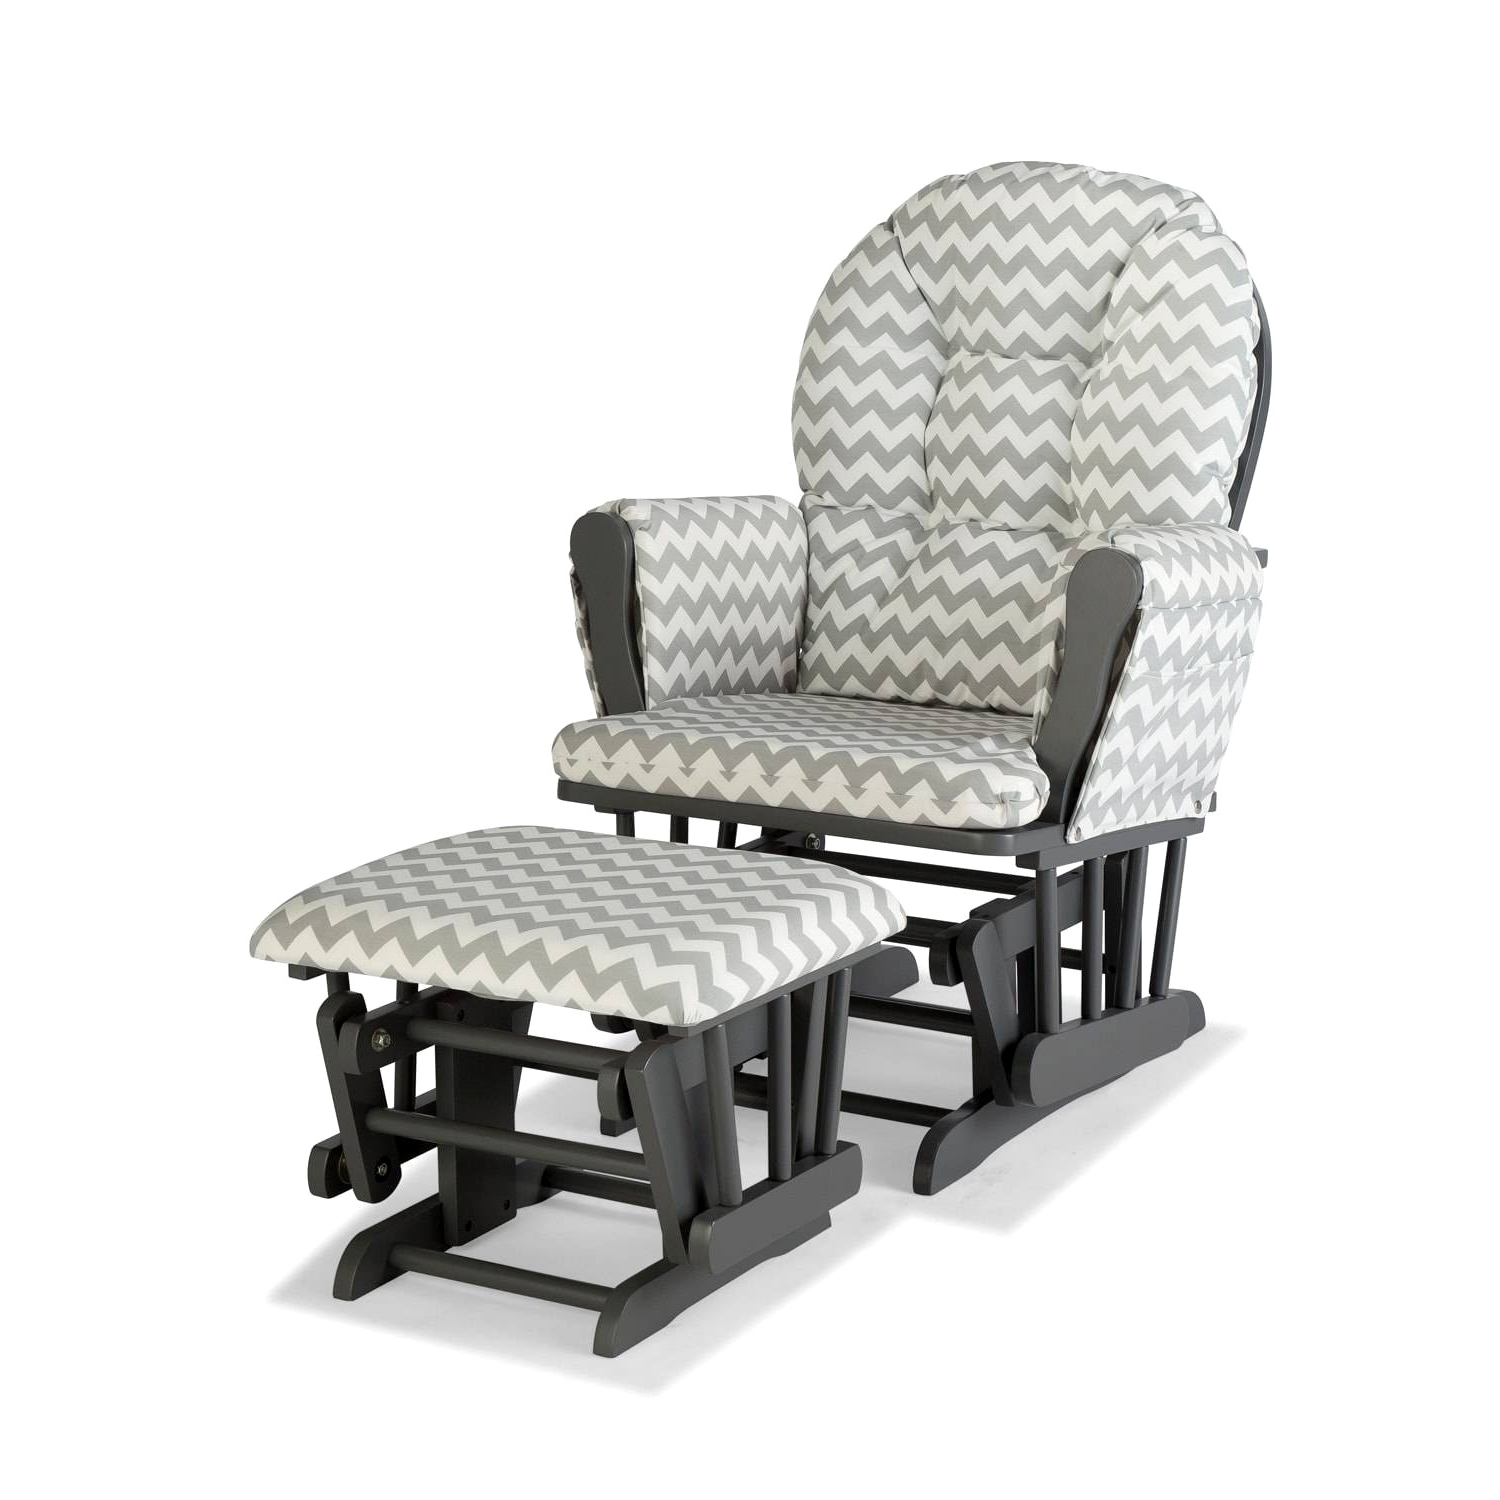 Best And Newest Patio Rocking Chairs With Covers Throughout Rocking Chair Best Outdoor Patio Rocking Chairs Lovely Victorian (View 9 of 15)